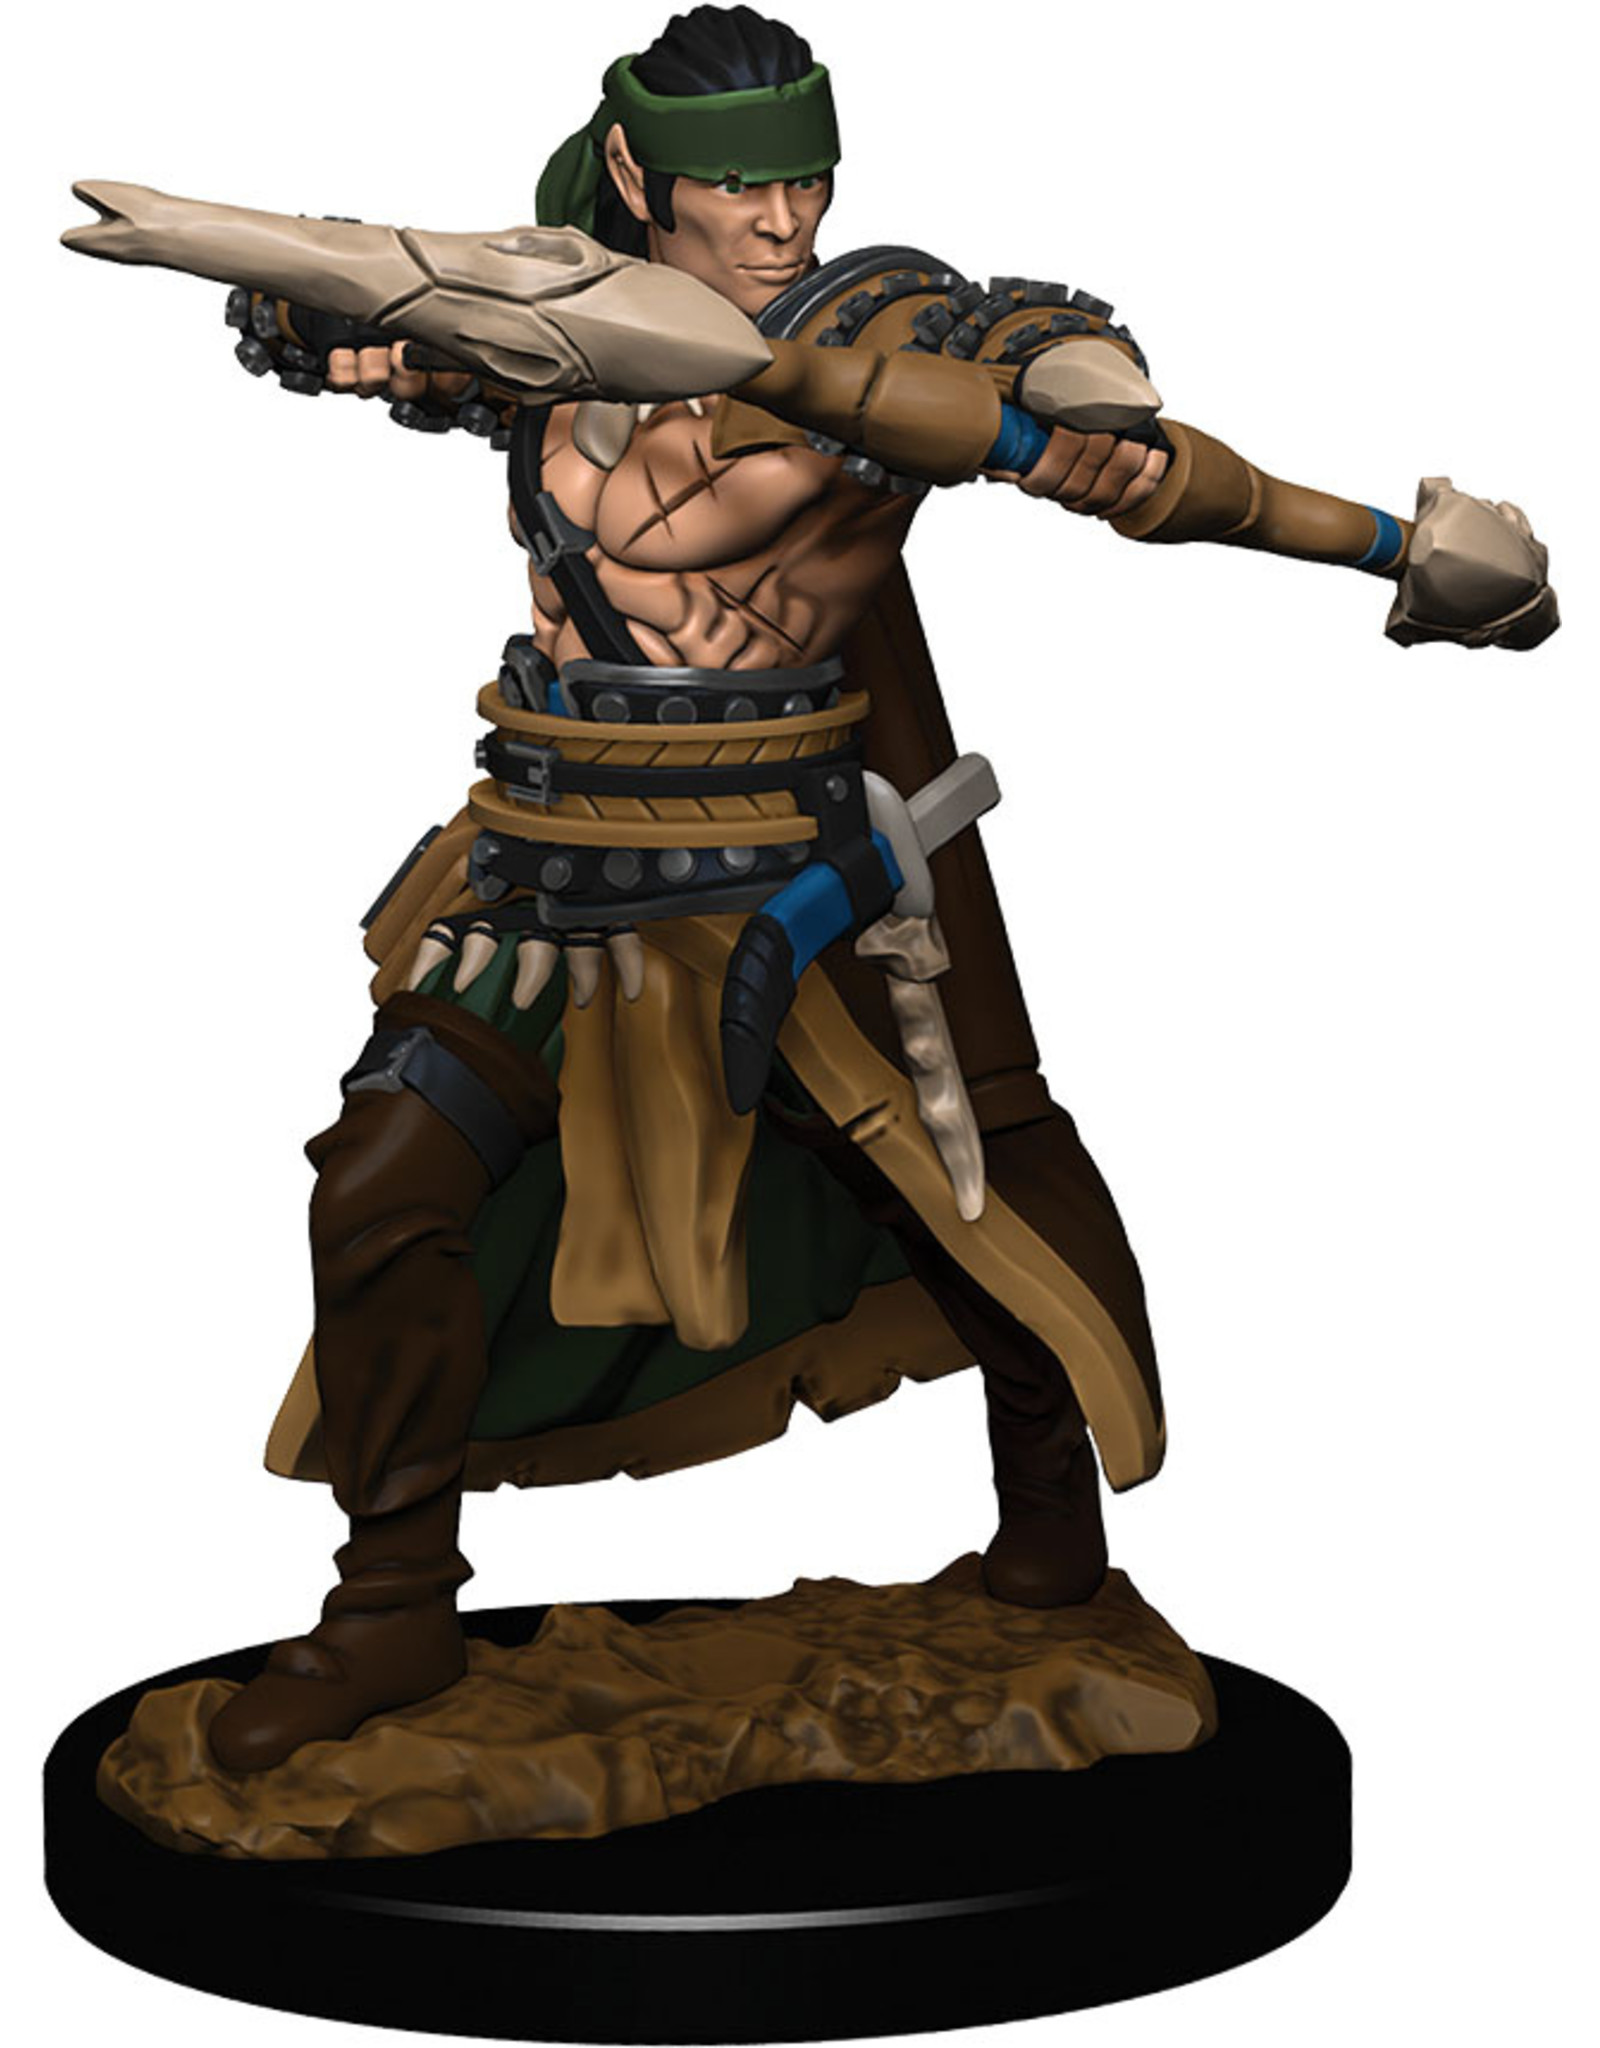 Wiz Kids PF Battles: Premium Painted Figure - W1 Half-Elf Ranger Male